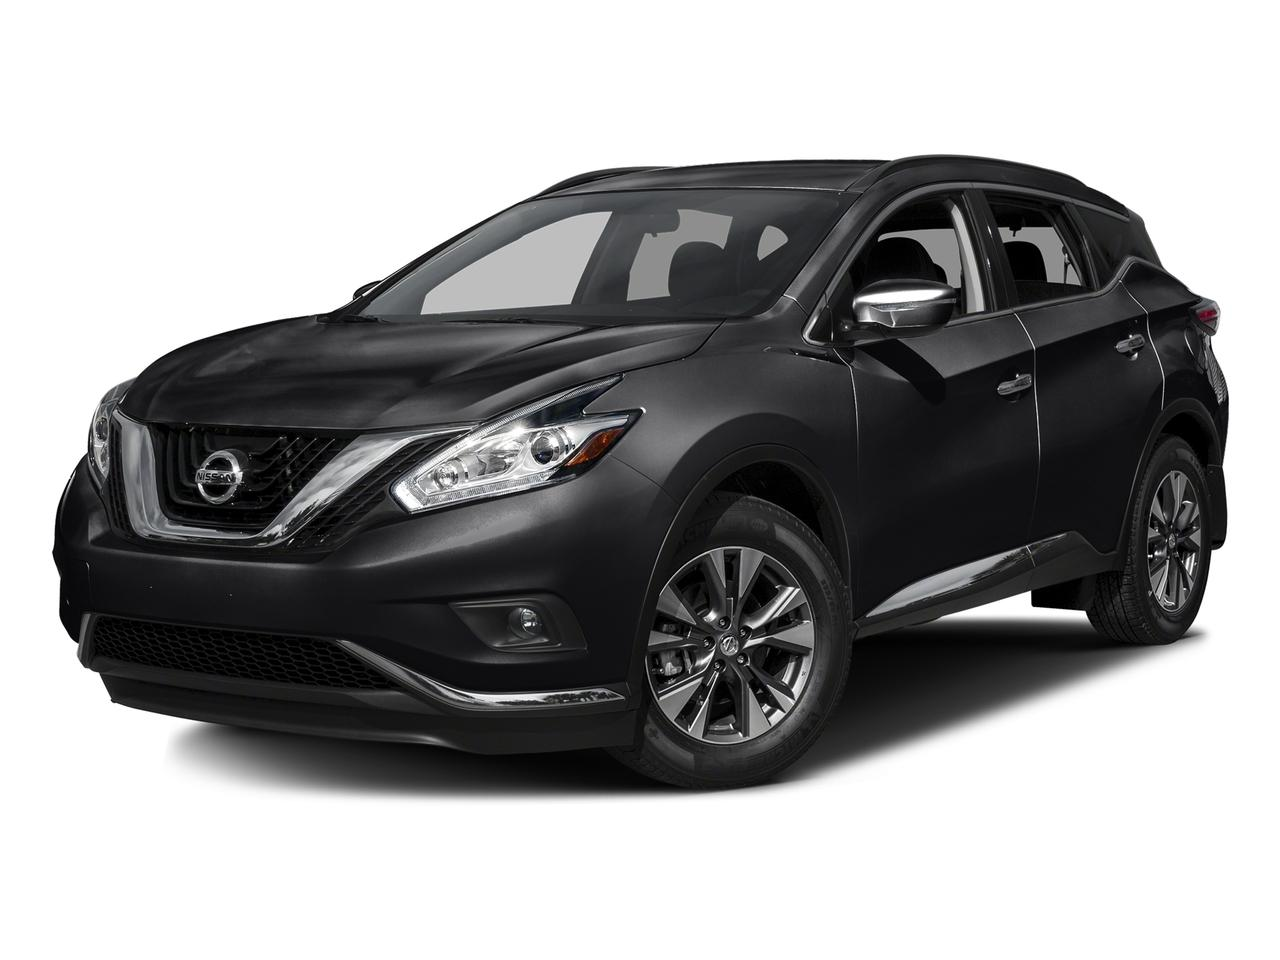 2016 Nissan Murano Vehicle Photo in New Castle, DE 19720